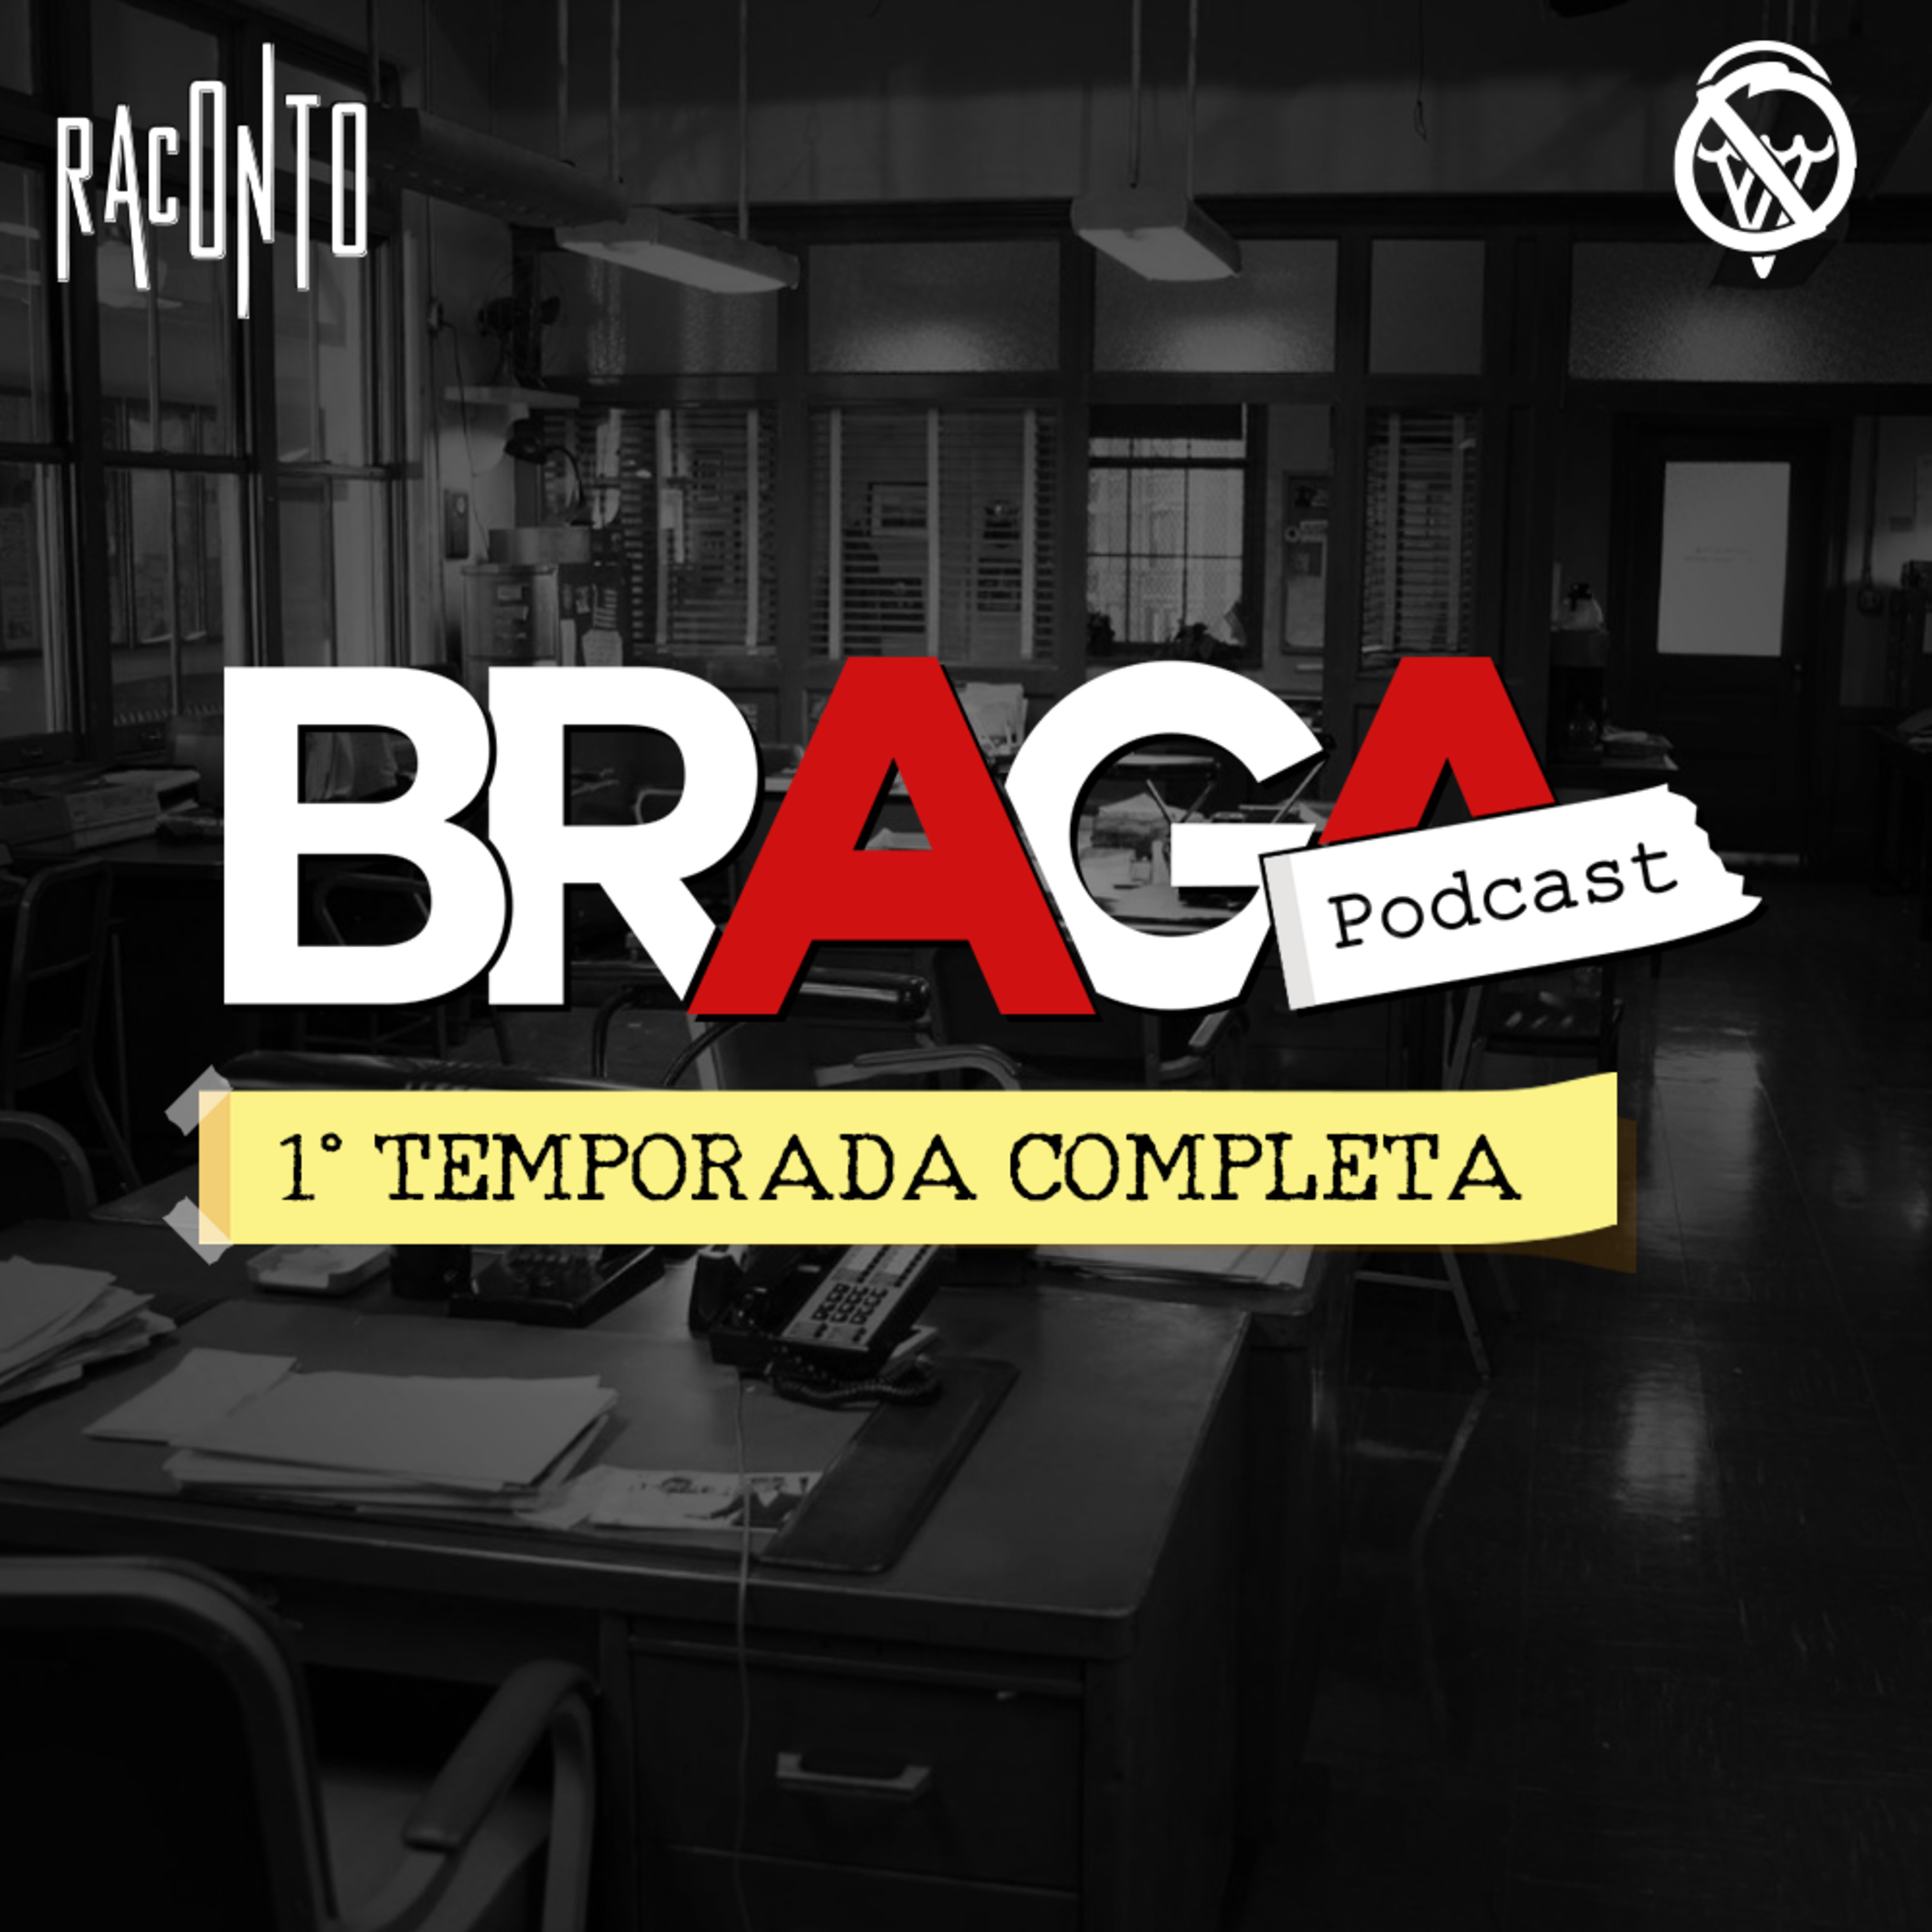 BRAGA | Podcast – 1° Temporada Completa